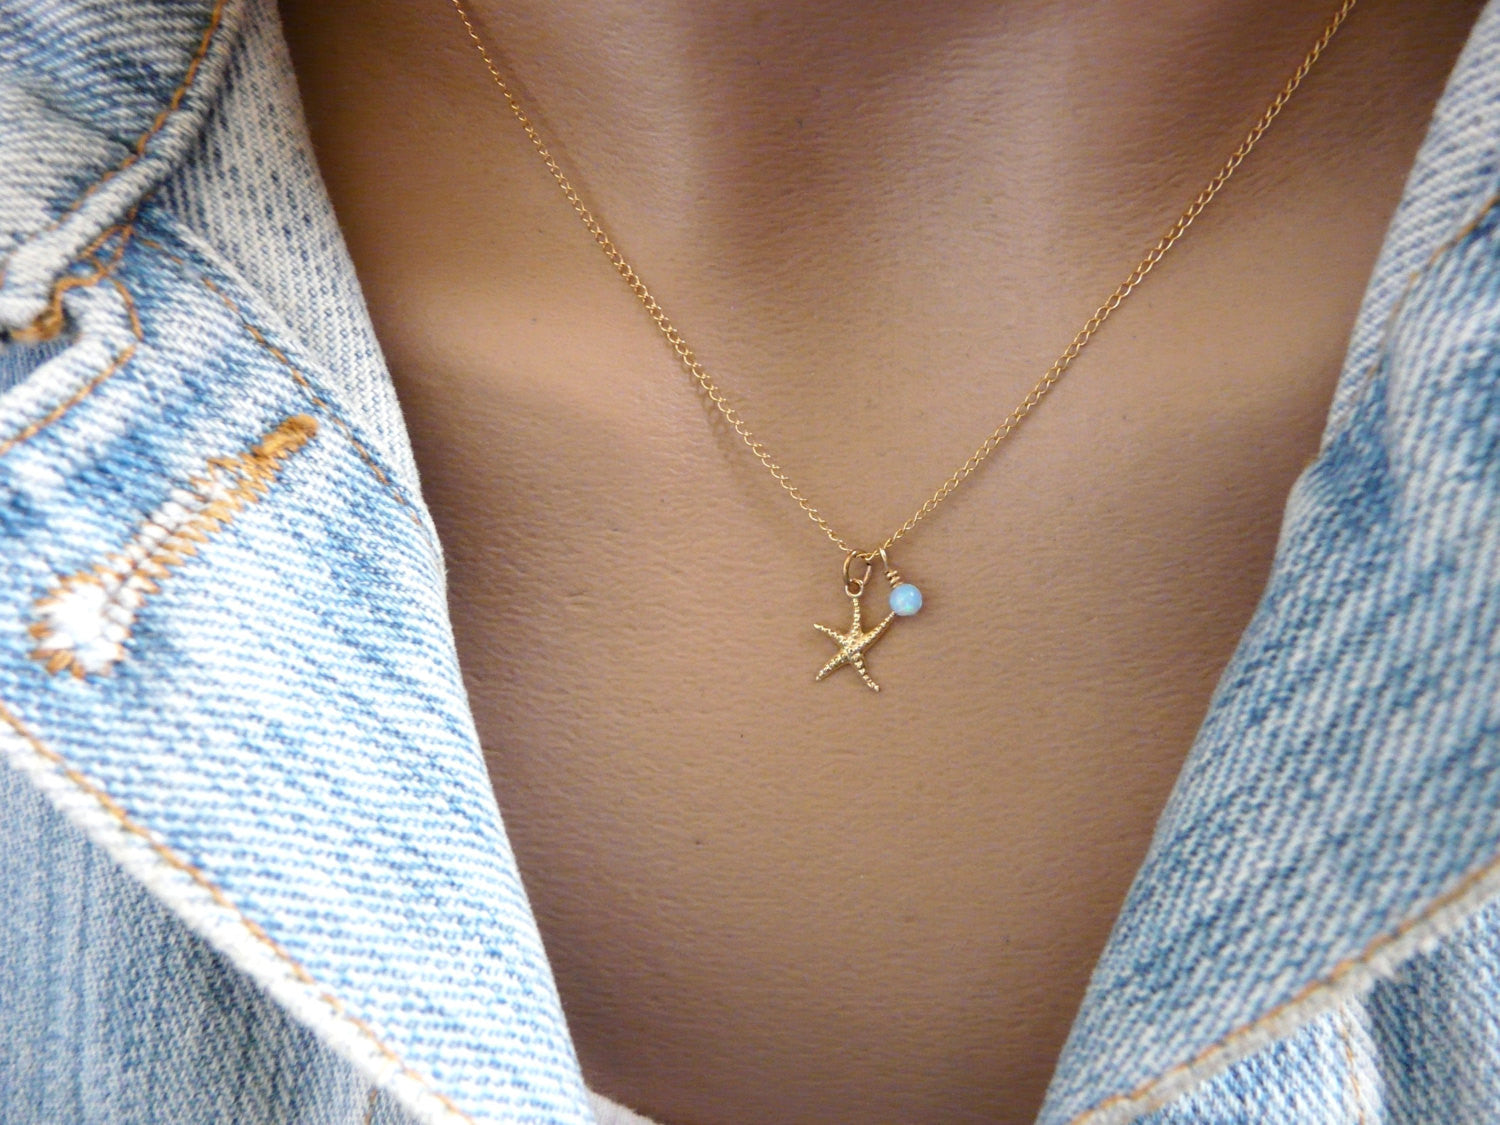 Starfish necklace gold filled - OpaLandJewelry